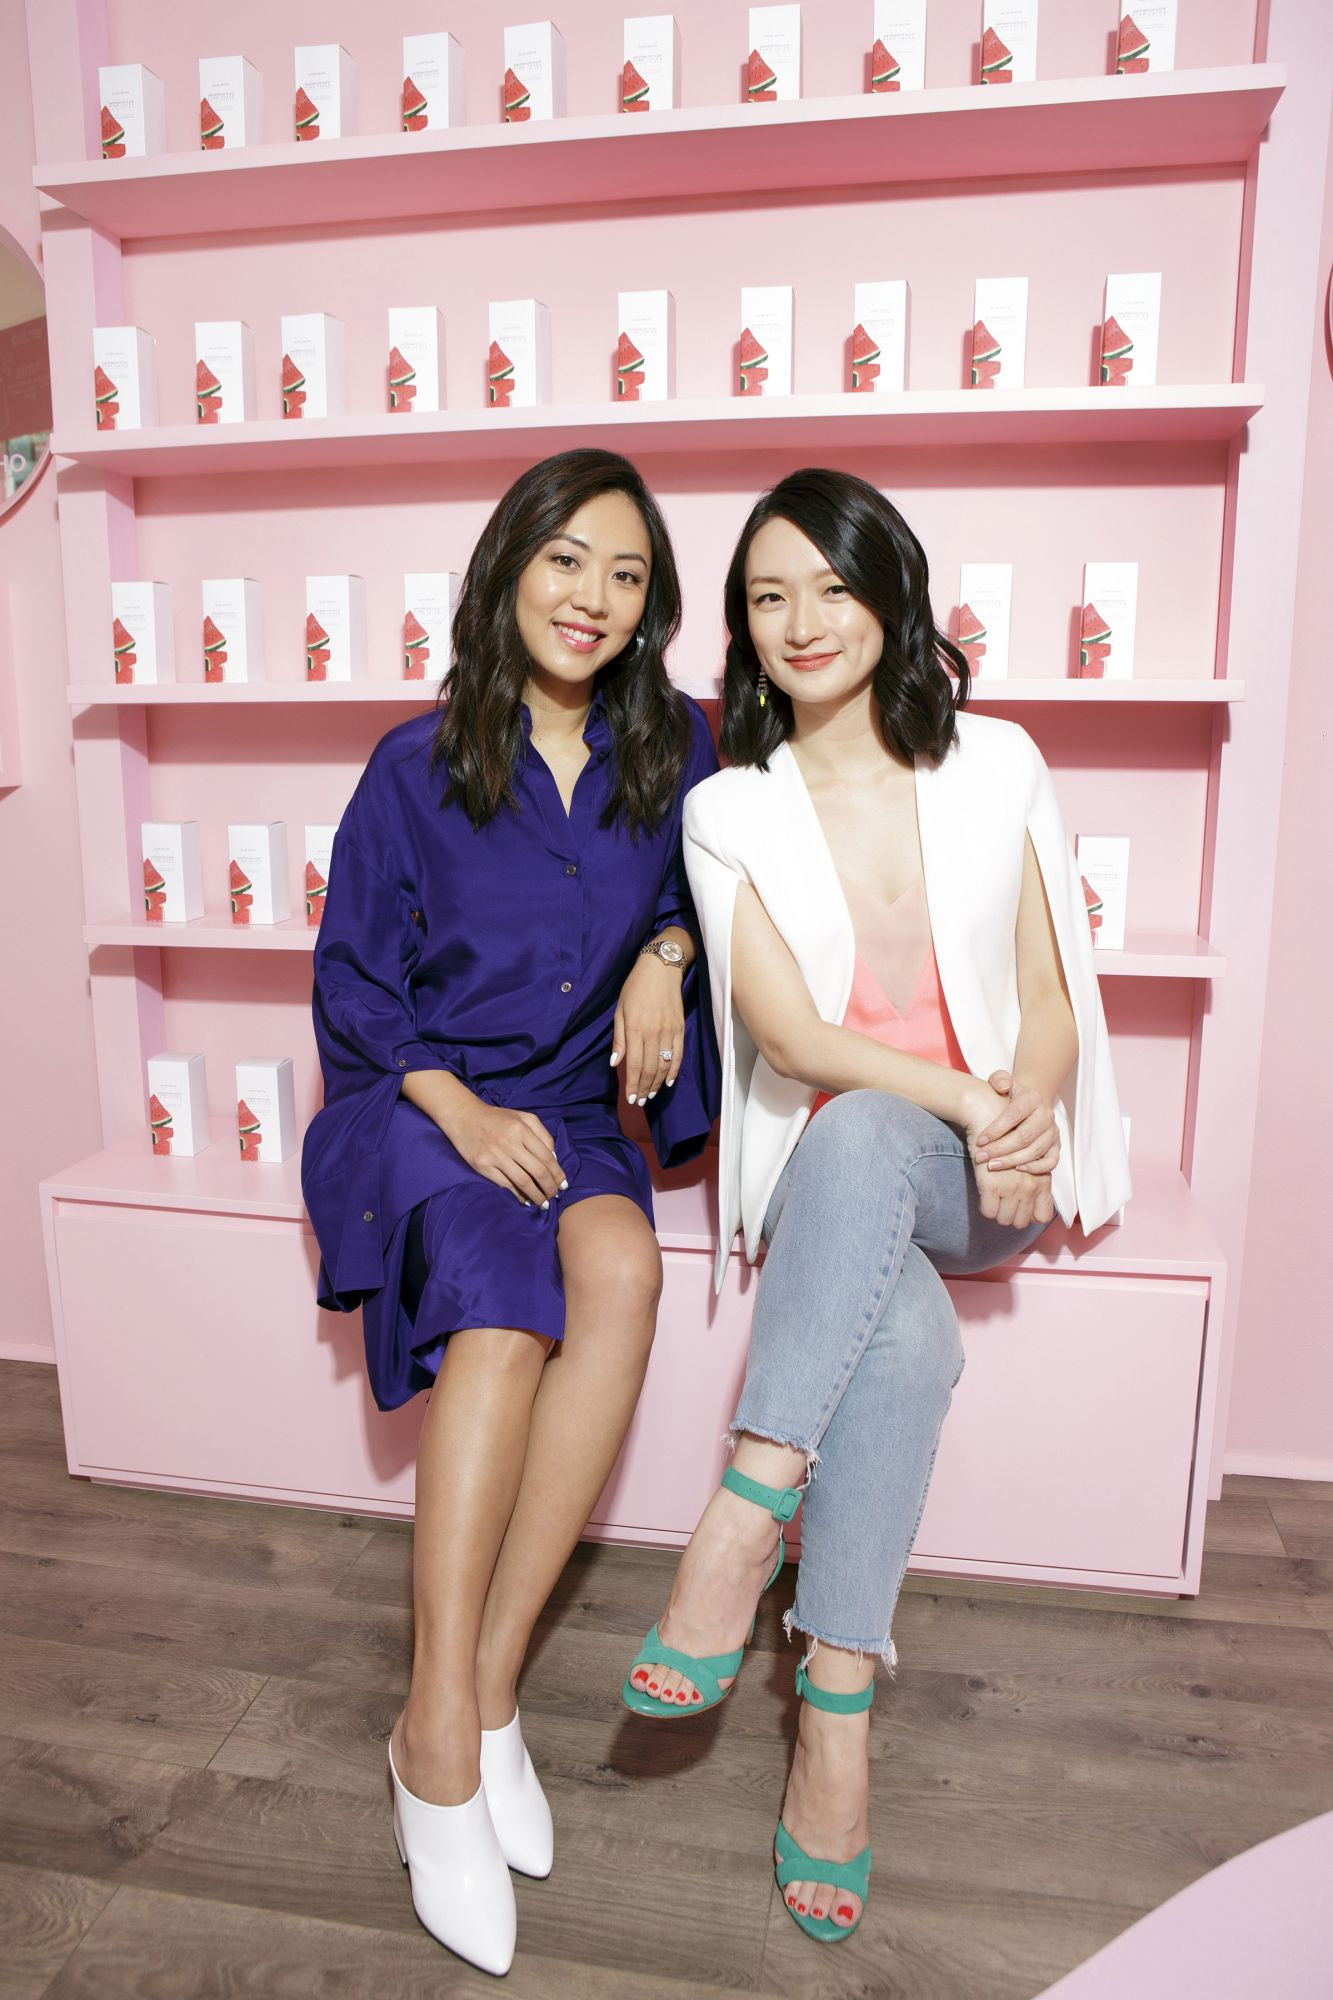 Skincare Secrets: The Best K-Beauty Tips by Glow Recipe's Sarah Lee and Christine Chang